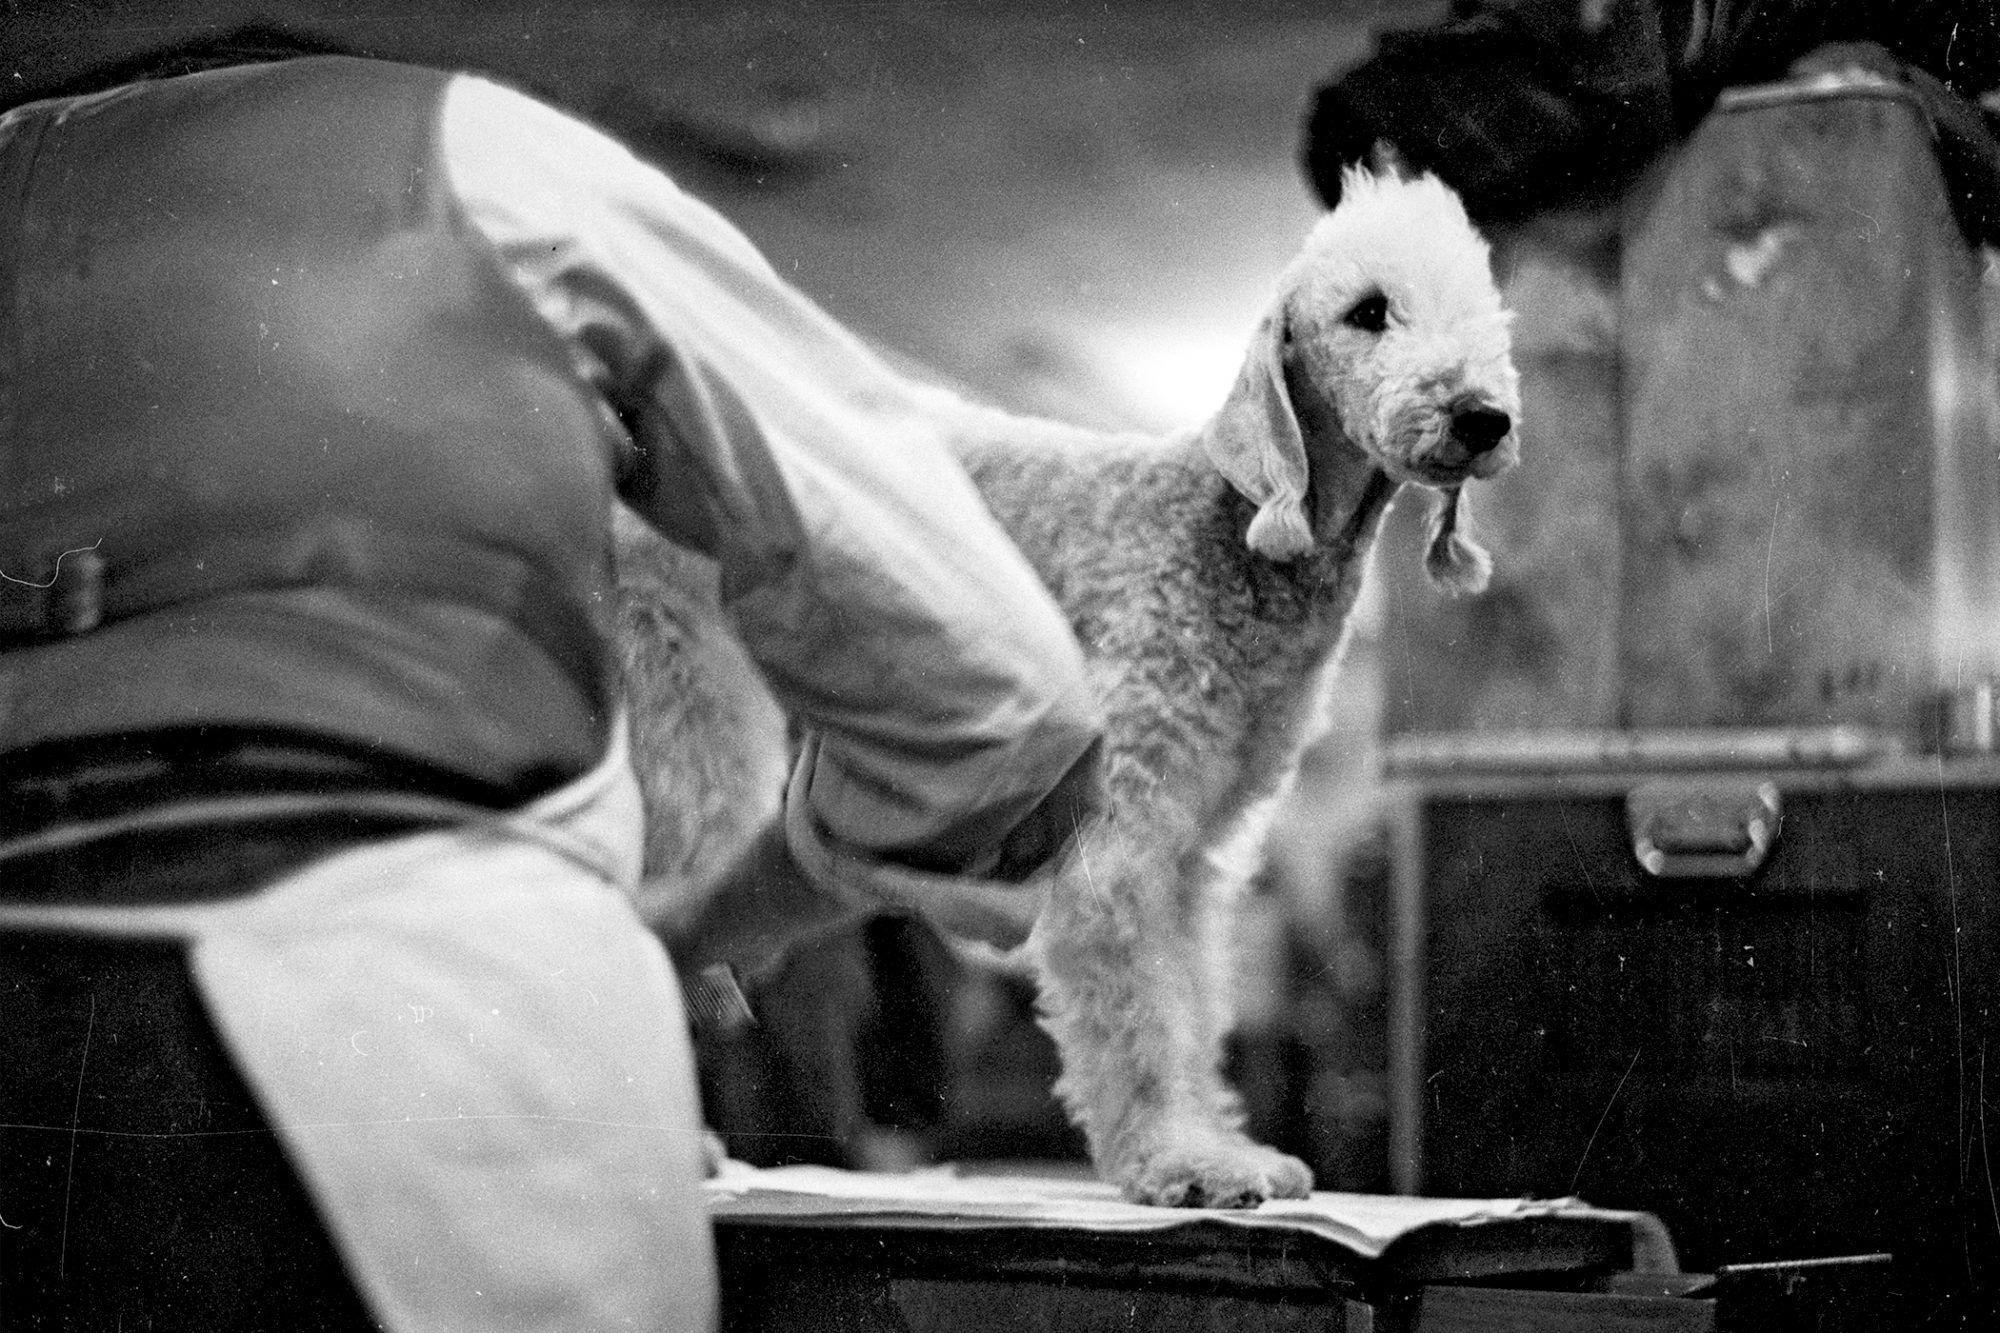 Black and white photo of bedlington terrier being groomed